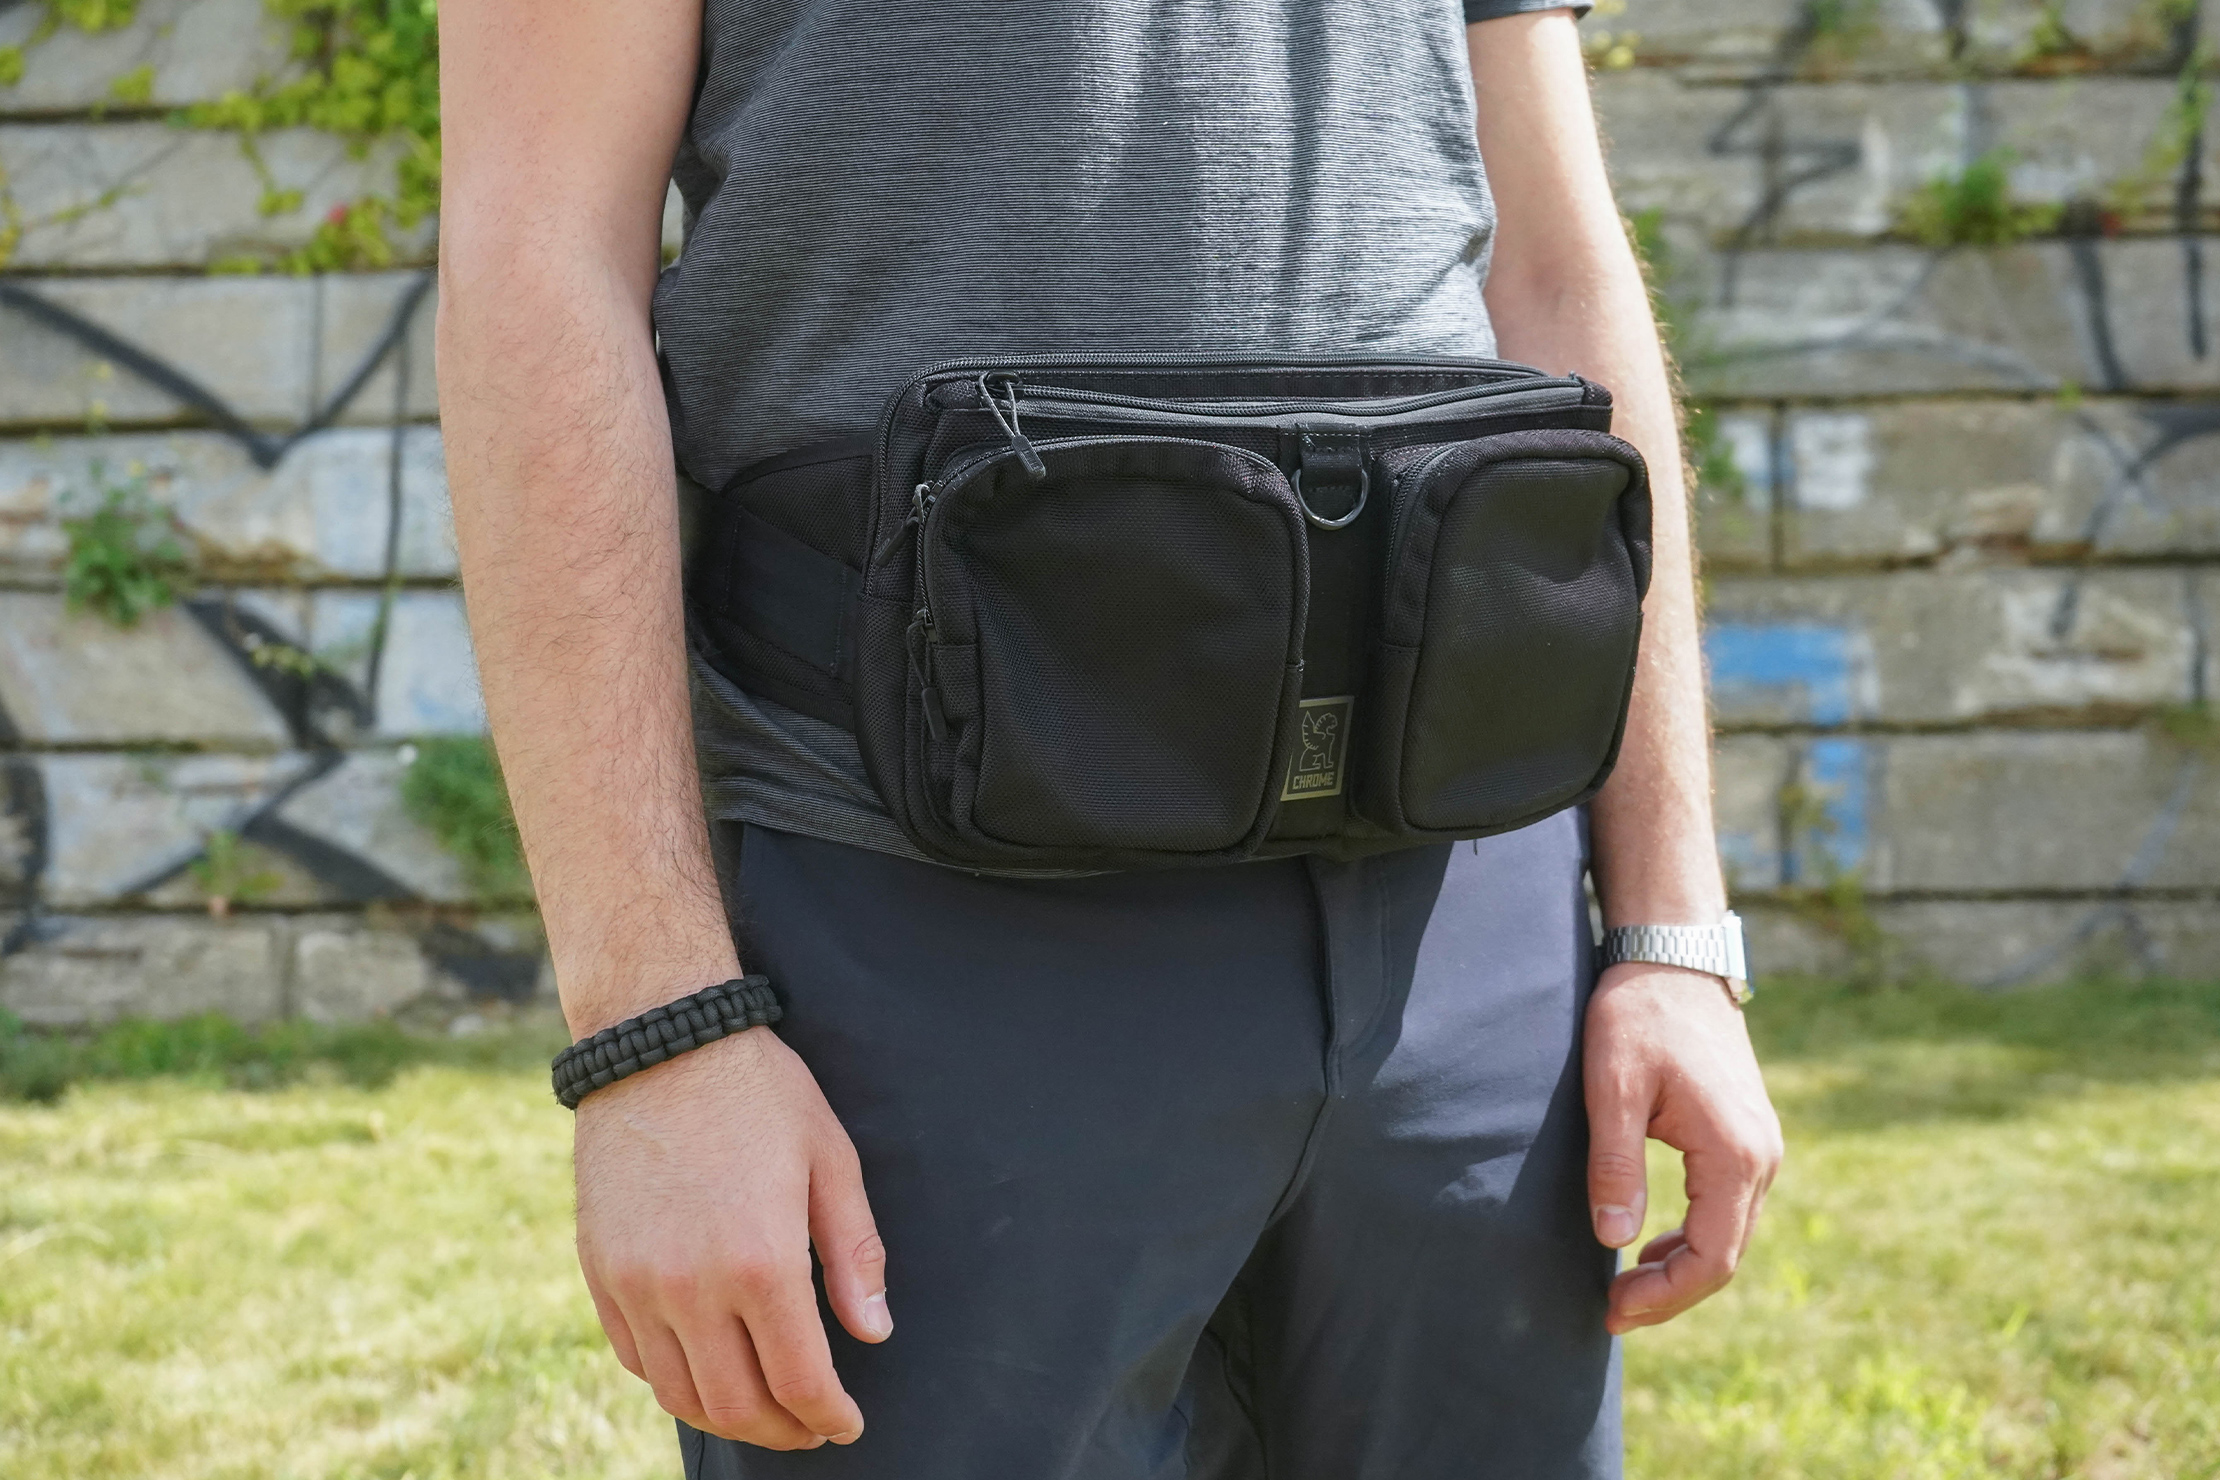 Chrome MXD Notch Sling Bag Fanny Pack